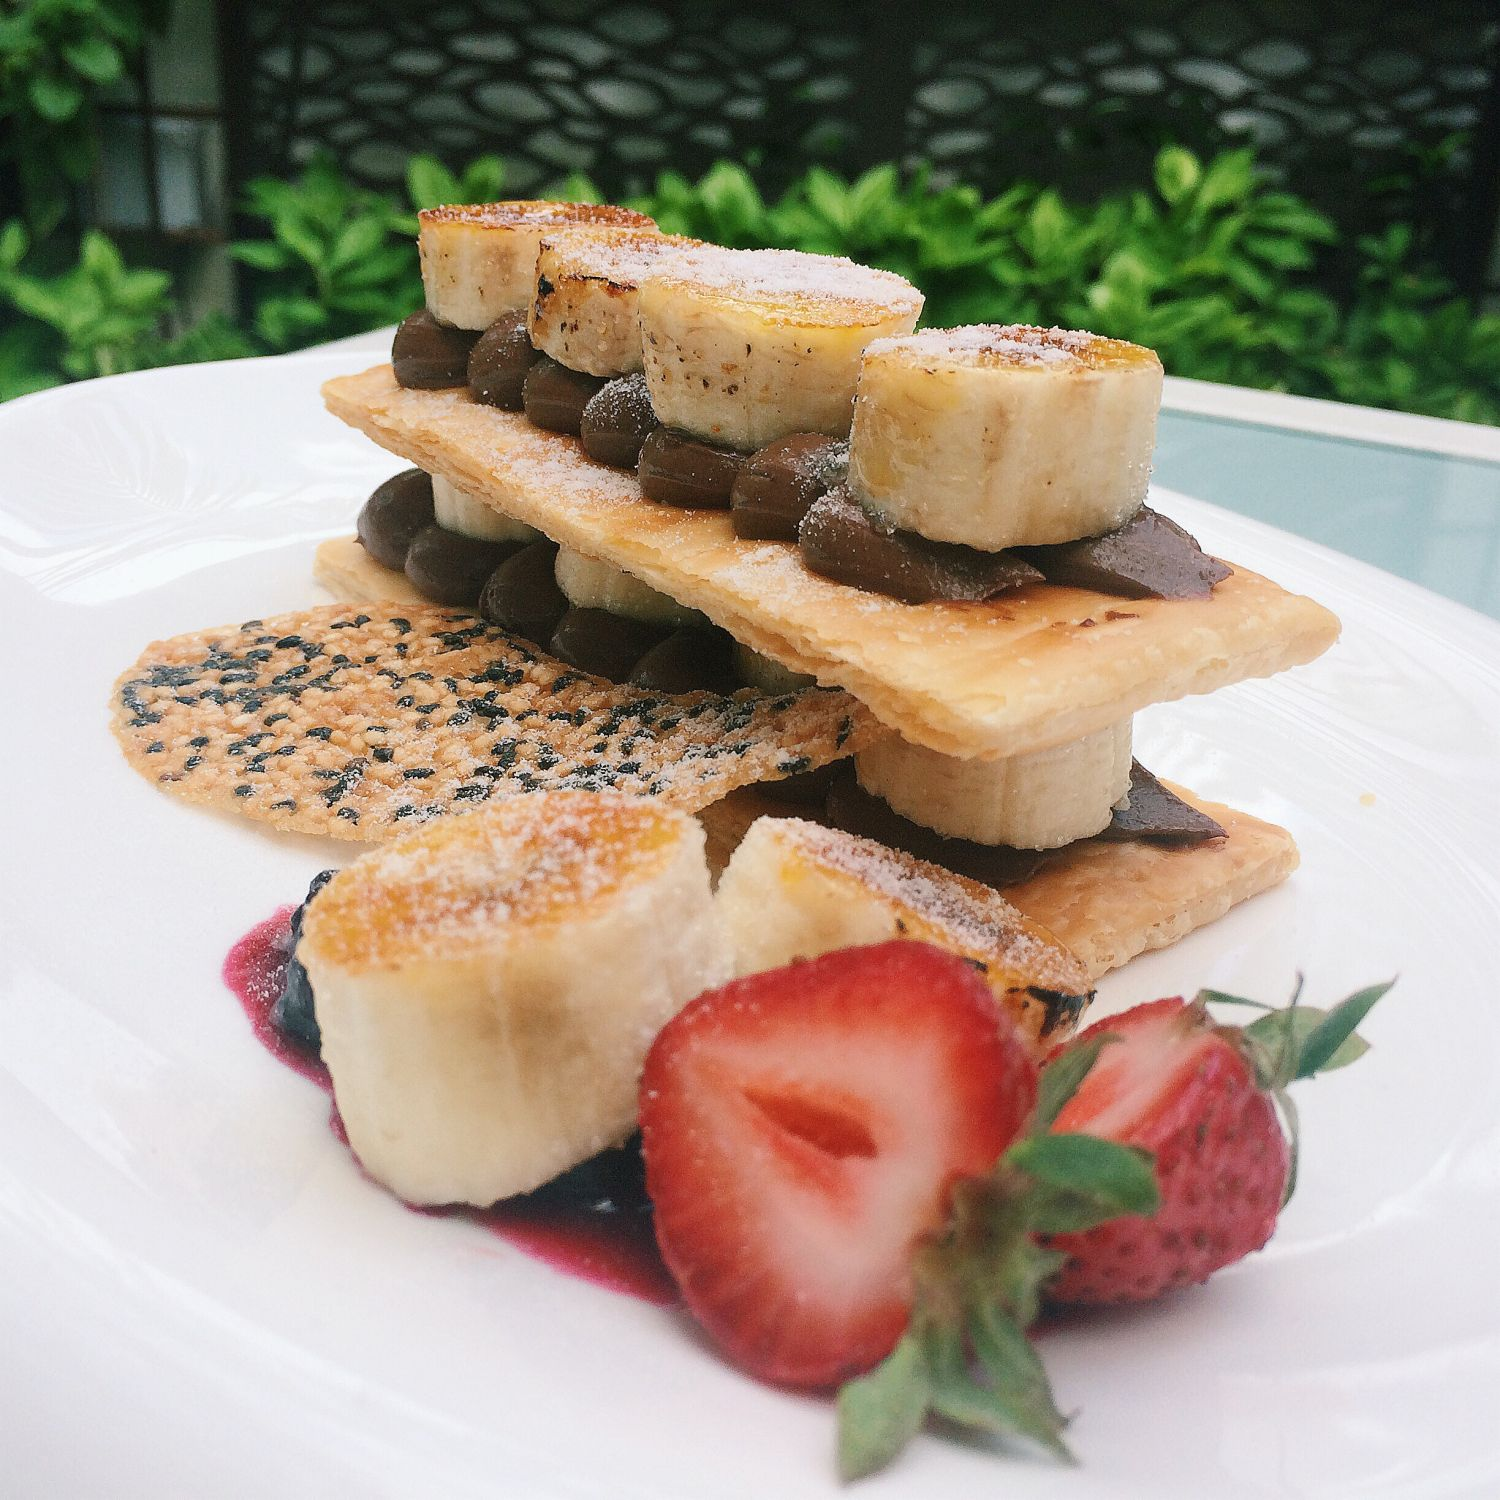 Burnt Banana Mille-feuille - Canopy Garden Bar & Burnt Banana Mille-feuille - Canopy Garden Bar | Secret Life of ...